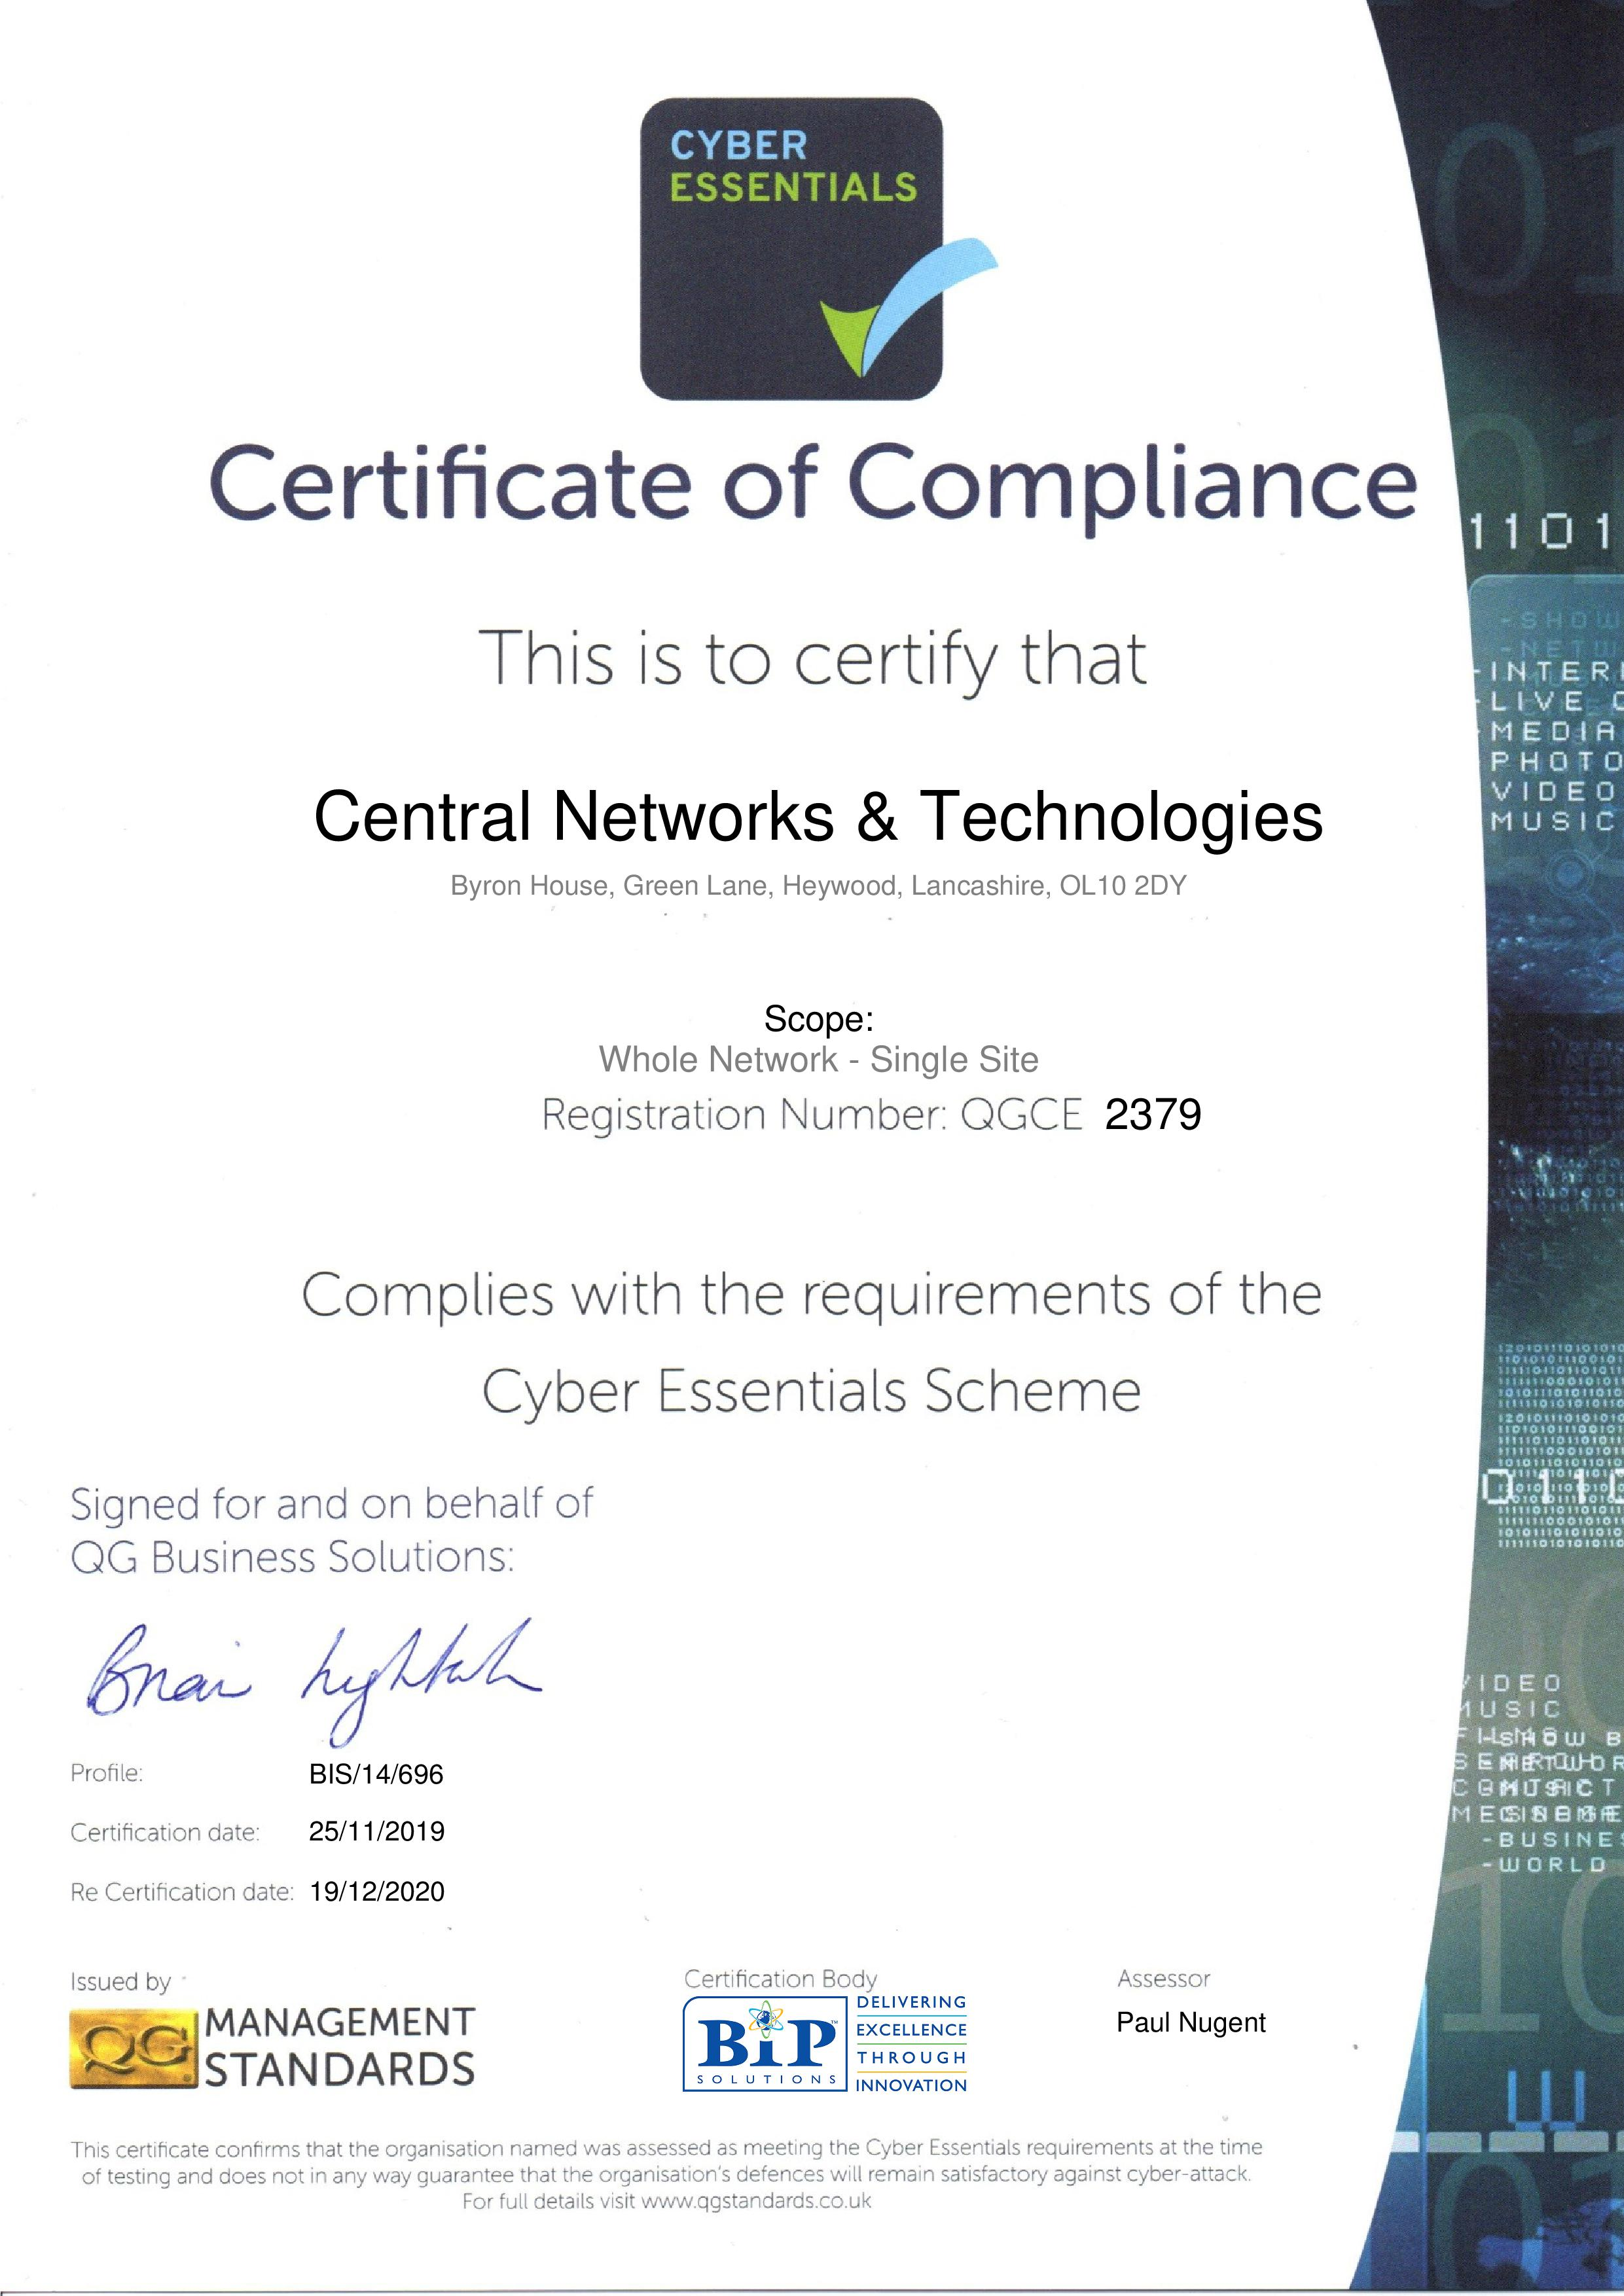 QGCE2379 Central Networks & Technologies